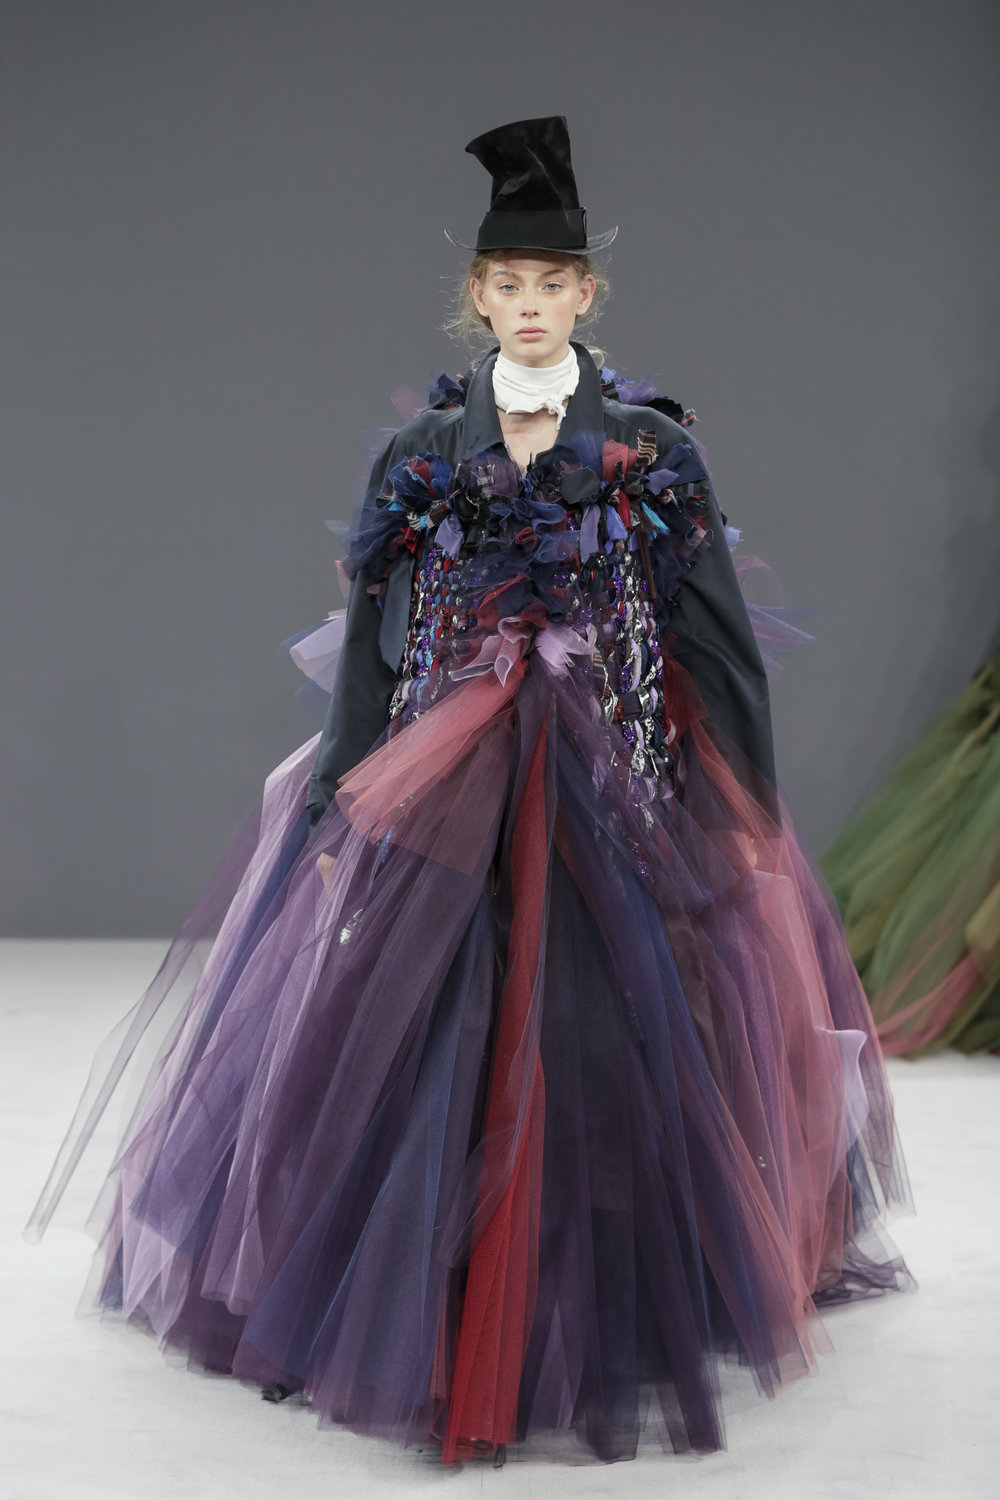 VIKTOR & ROLF HAUTE COUTURE FALL/WINTER 2016